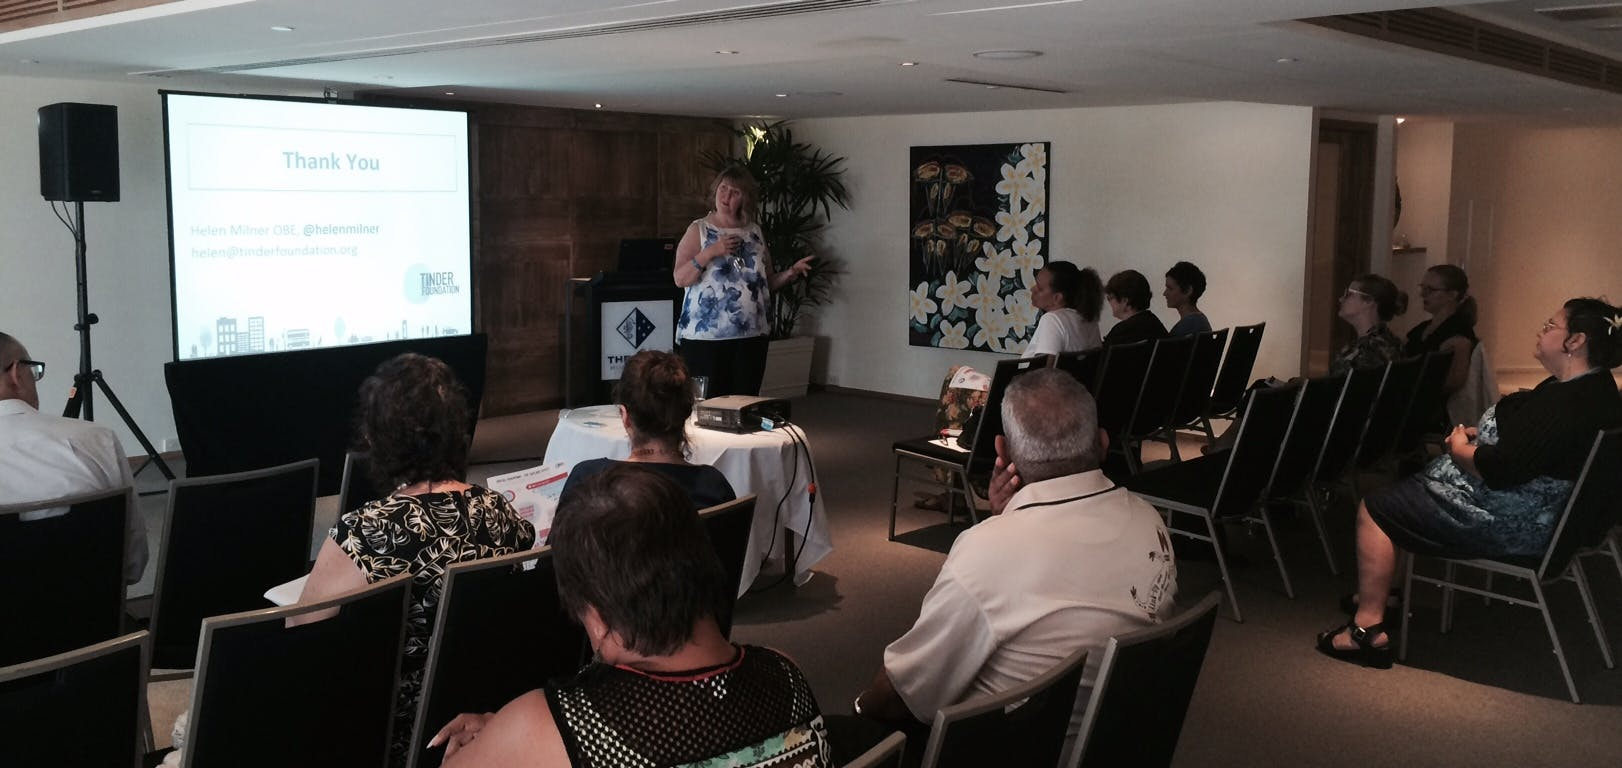 13 June 2016: International Digital Thought Leader - Helen Milner, touring in Cairns